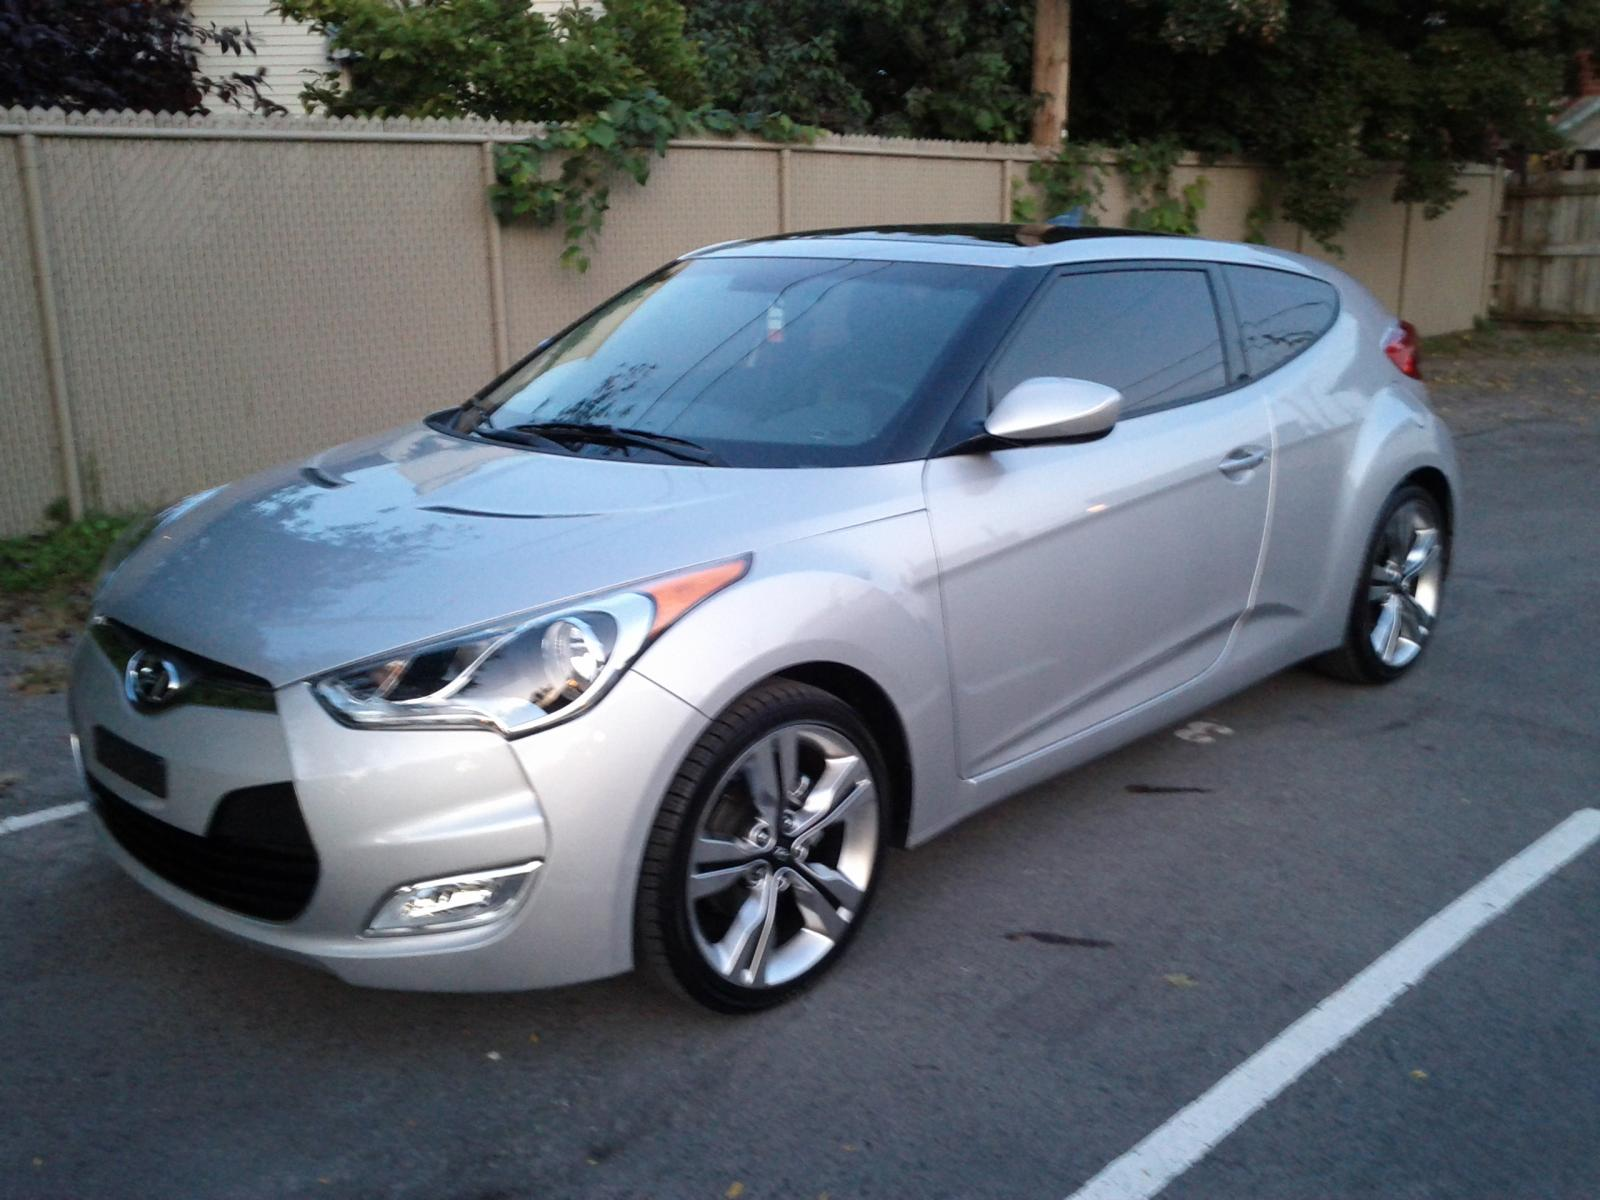 2012 Hyundai  Veloster Insurance $104 Per Month